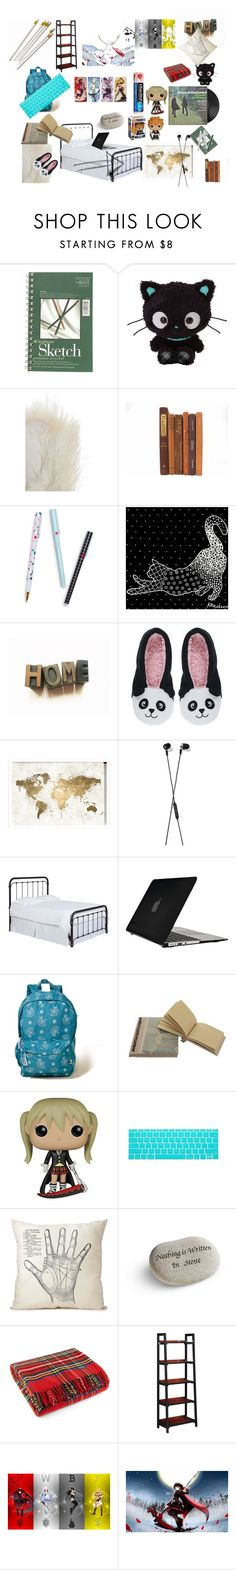 """""""an artists bedroom"""" by sakakashi ❤ liked on Polyvore featuring interior, interiors, interior design, home, home decor, interior decorating, Overland Sheepskin Co., ban.do, NOVICA and Charlotte"""